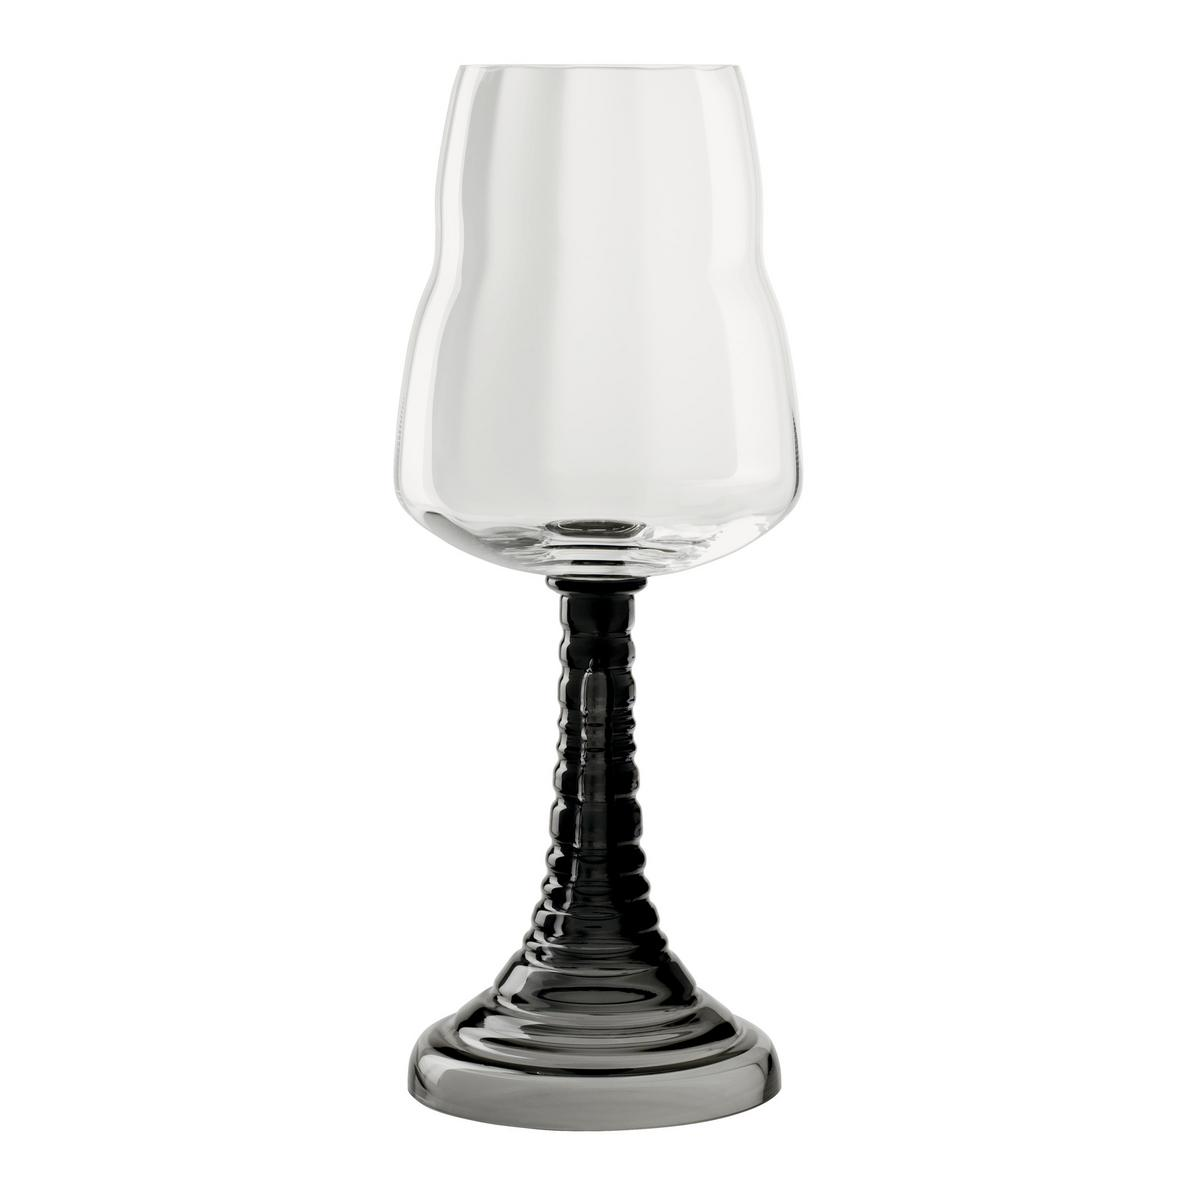 hering berlin domain wine glass no 2 clear flow. Black Bedroom Furniture Sets. Home Design Ideas